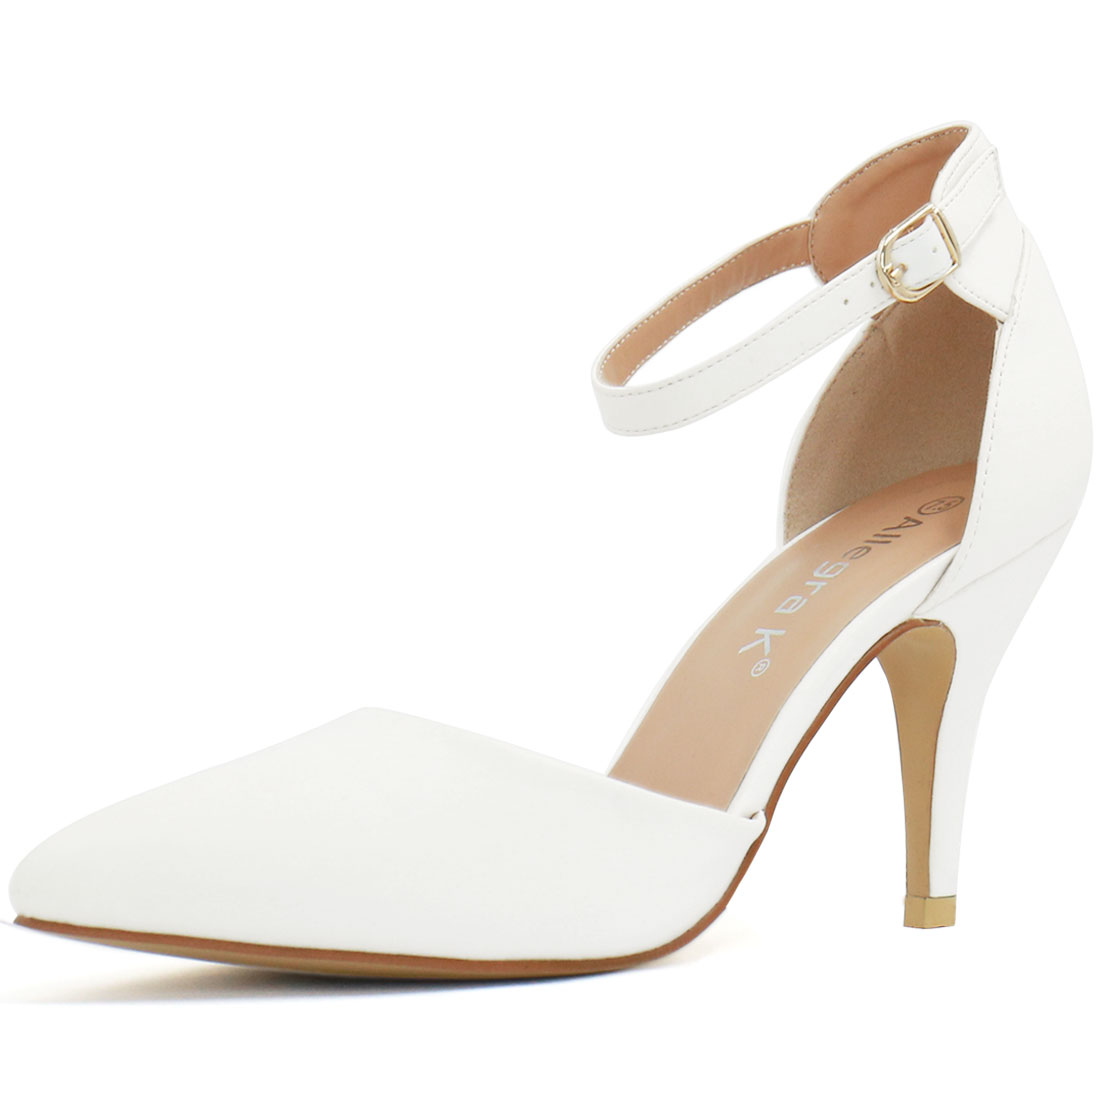 Woman Pointed Toe Stiletto Heel Ankle Strap Pumps White US 7